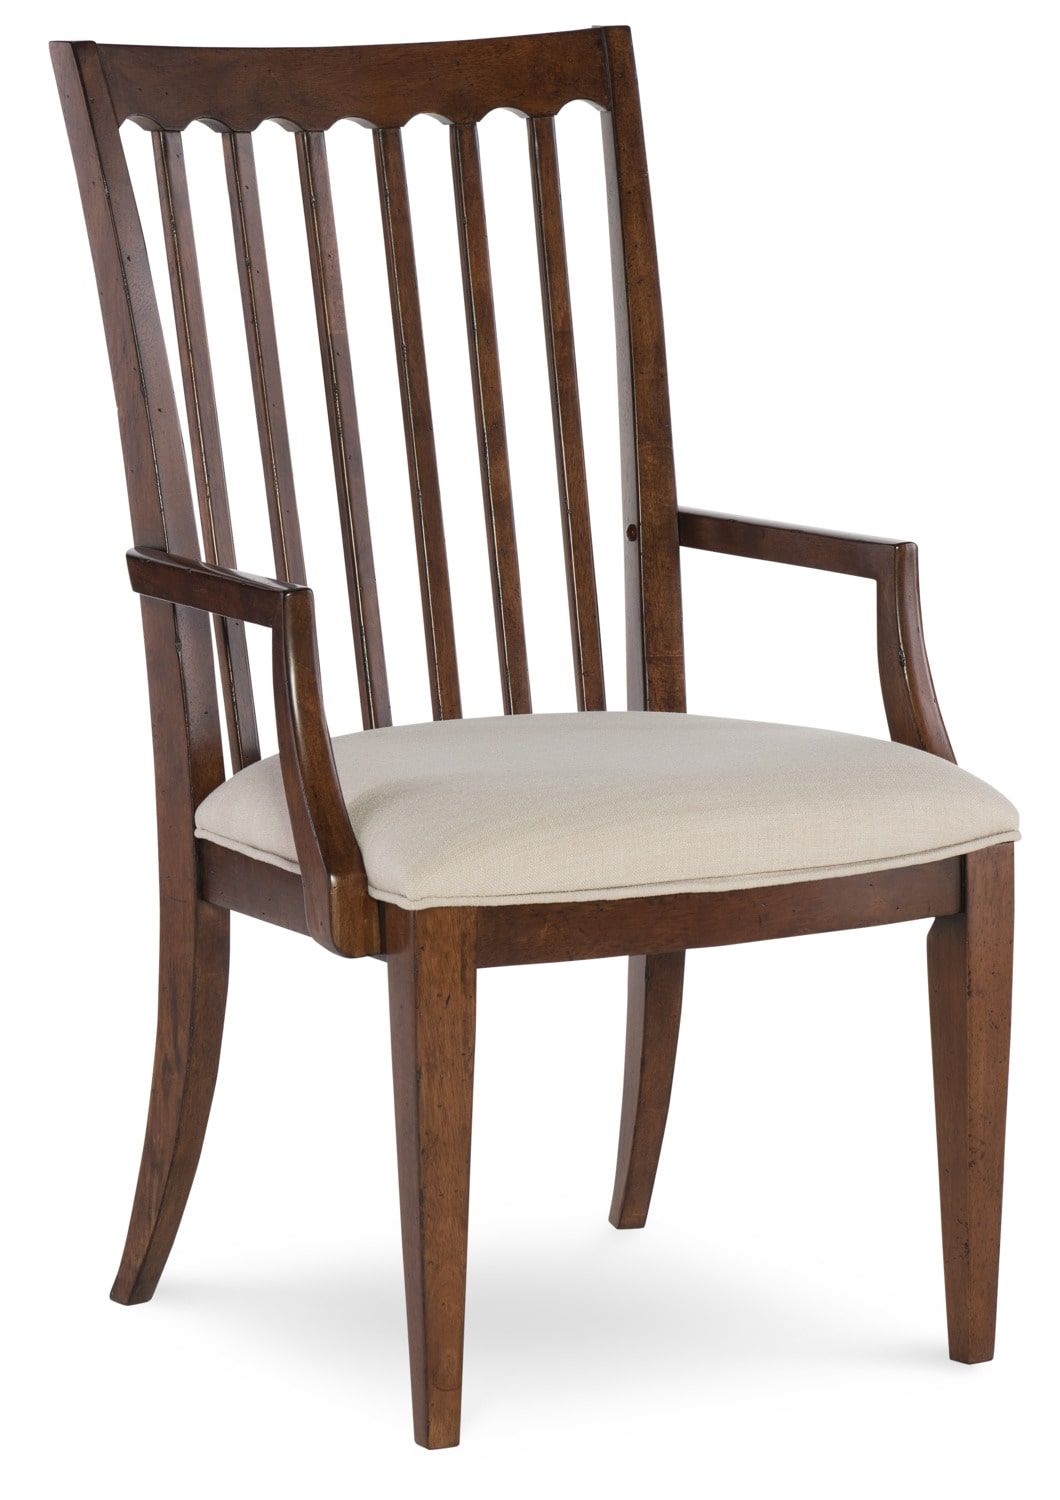 Dining Room Furniture - Rachael Ray Upstate Arm Chair  - Cherry